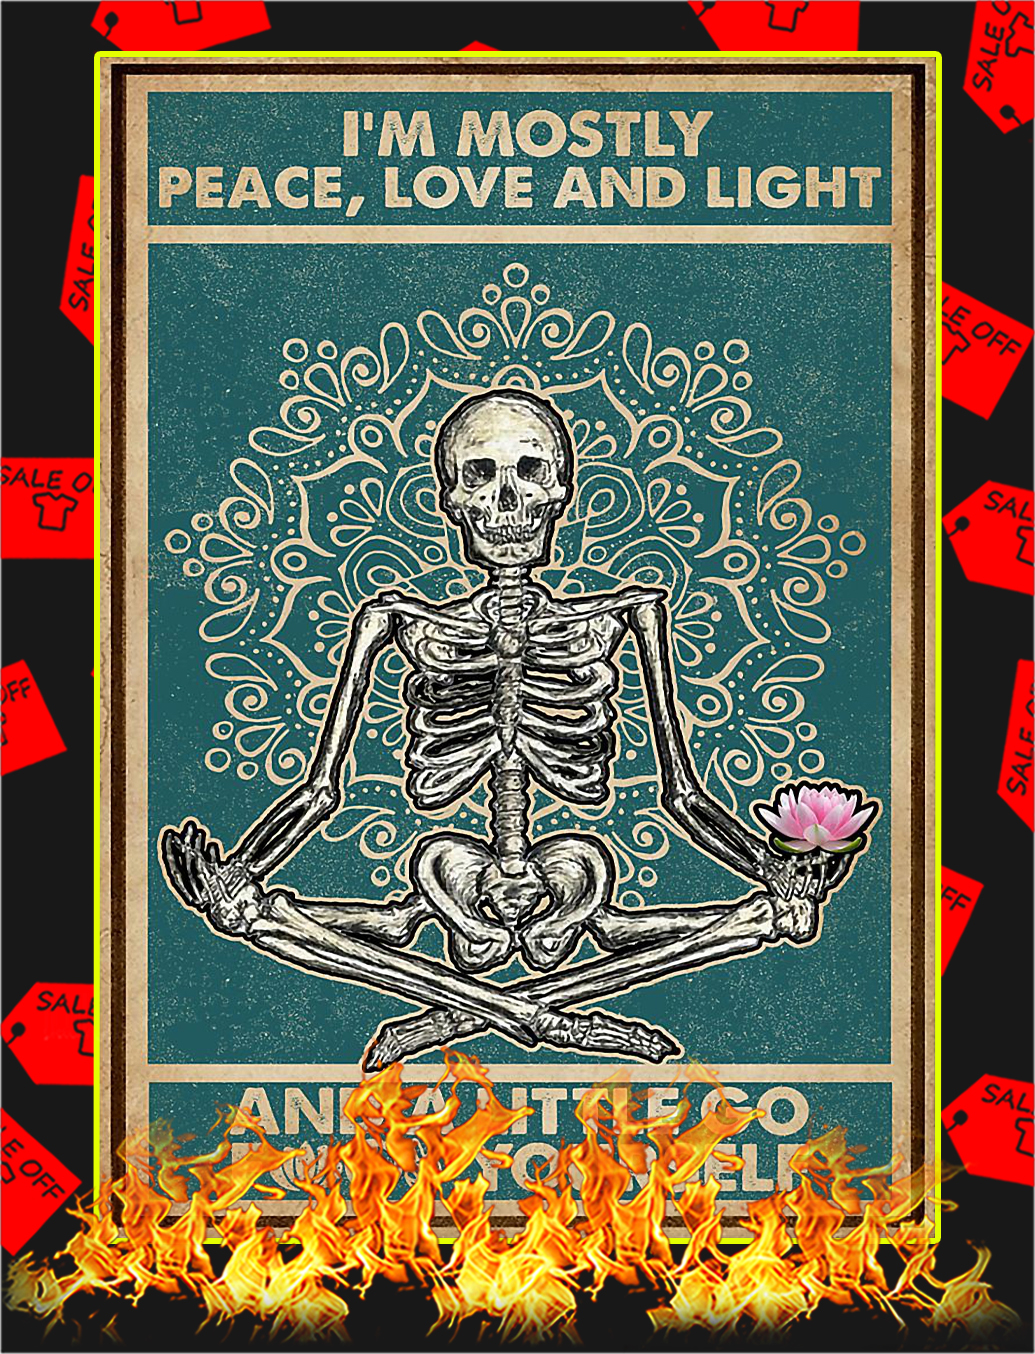 Skeleton I'm mostly peace love and light and a little go fuck yourself poster